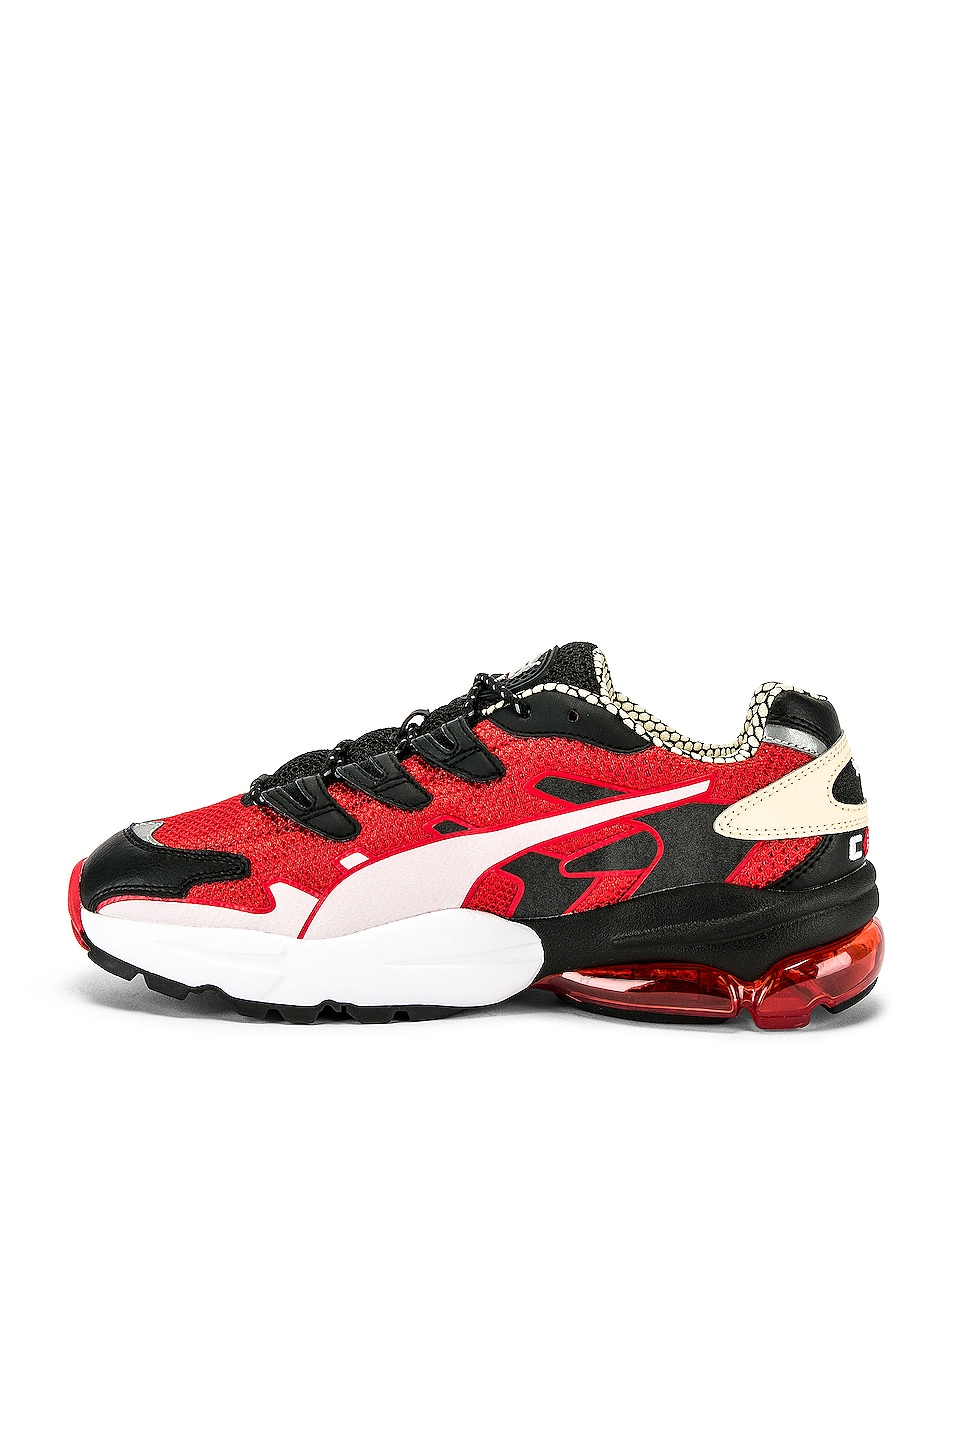 Image 5 of Puma Select Cell Alien Kotto in High Risk Red & Puma Black